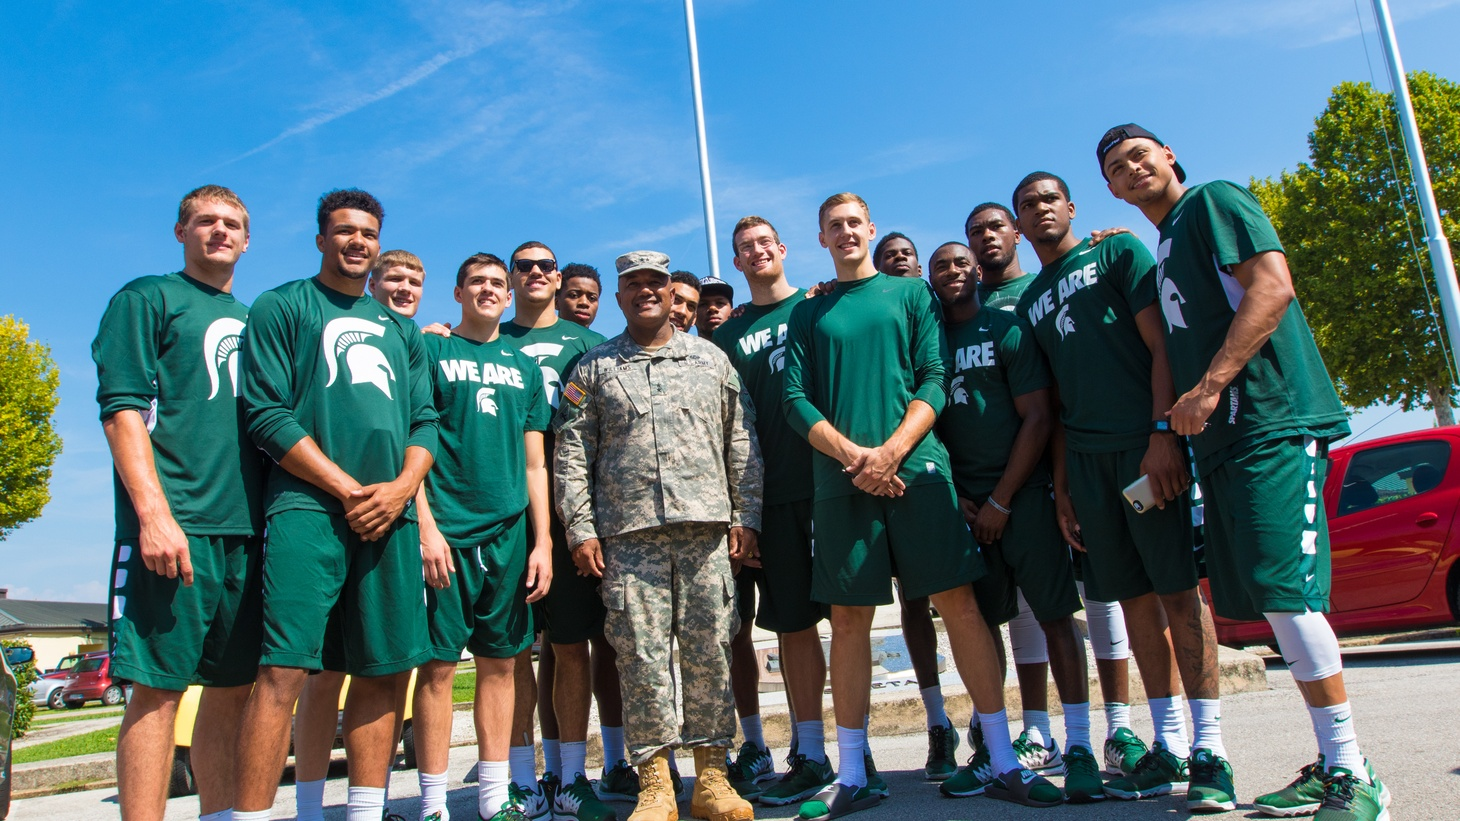 Michigan State Spartans visit U.S. Army Africa, 2015.